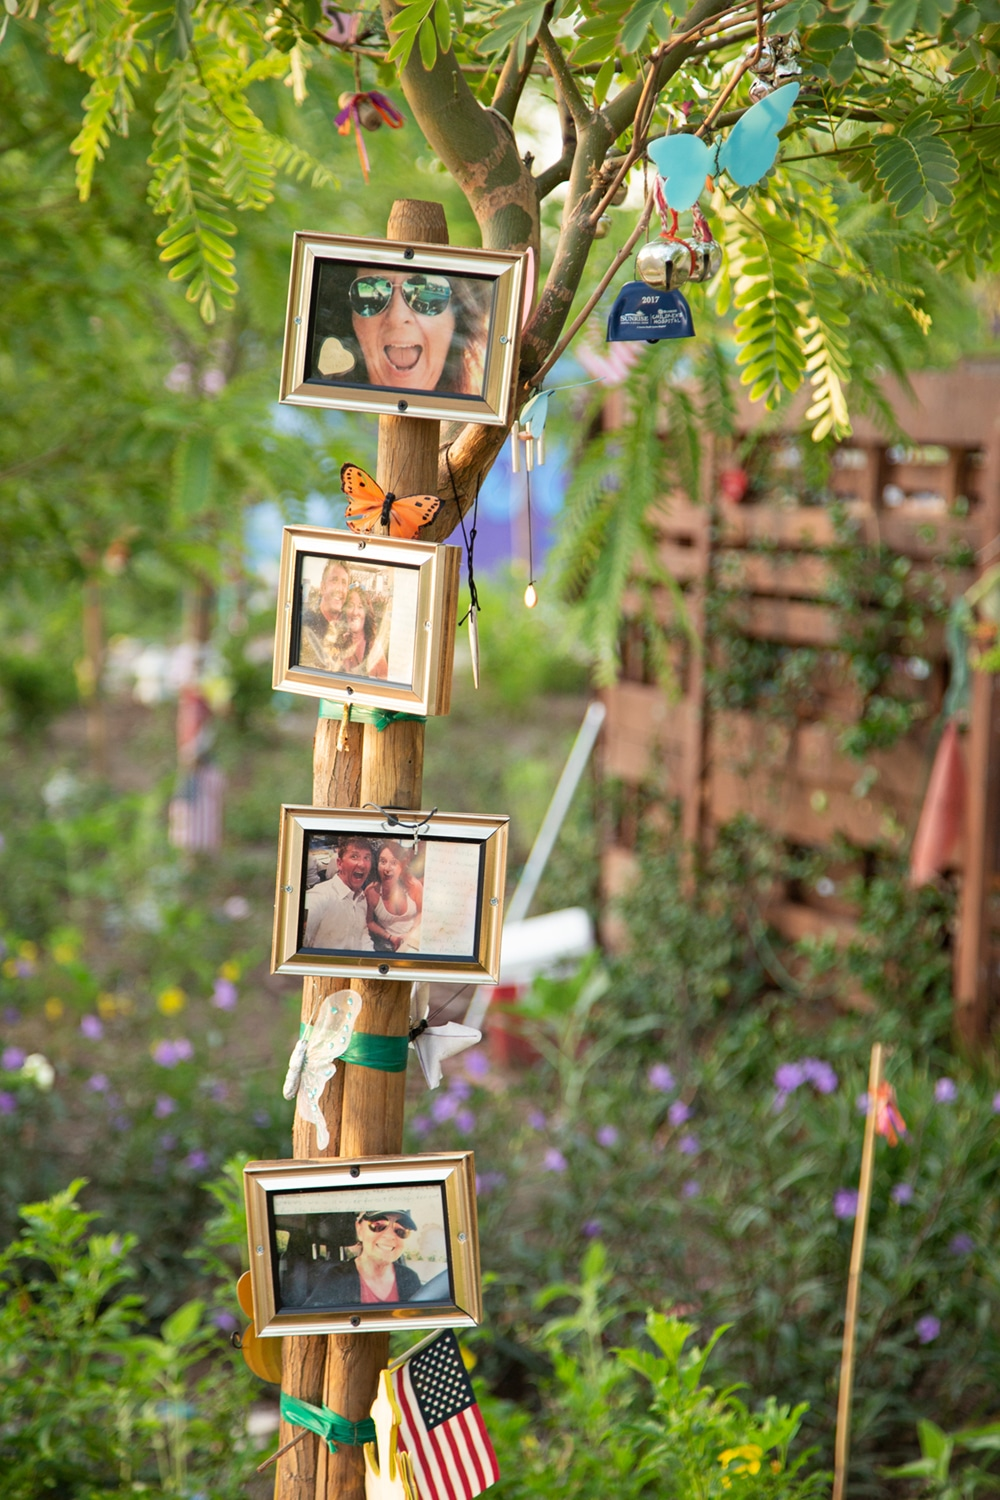 Healing Garden Memorial for October 1 Victims